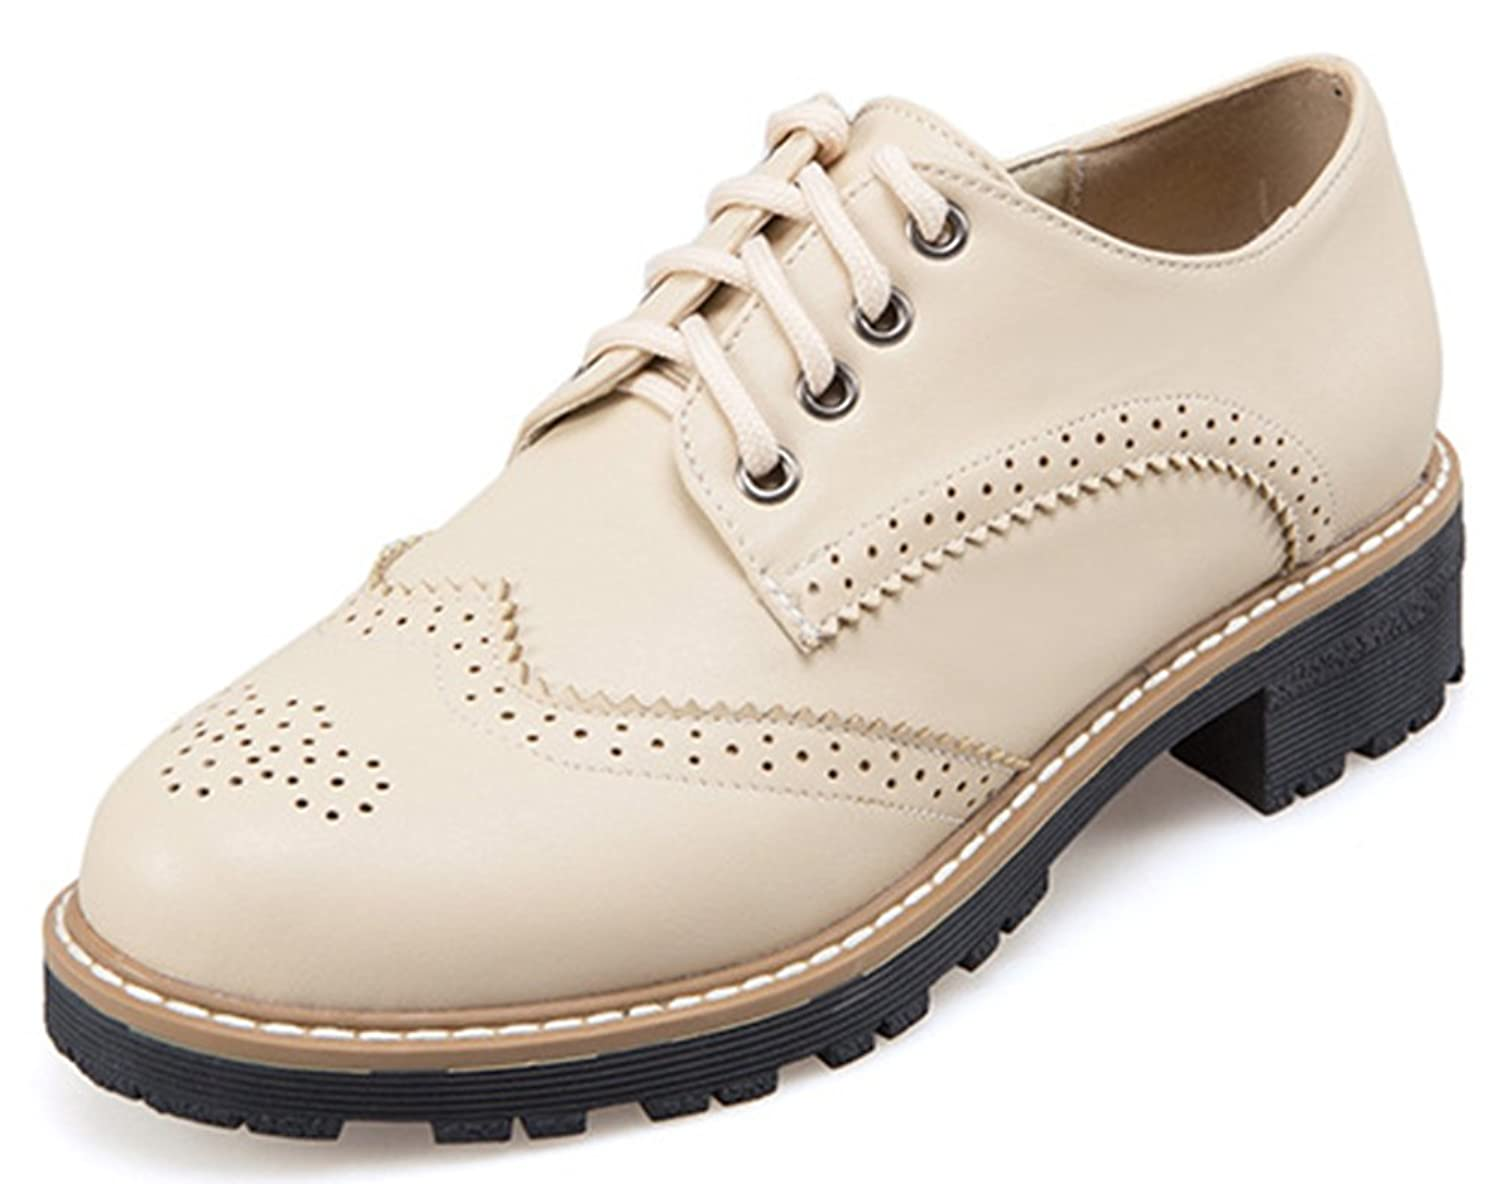 IDIFU Women's Casual Low Top Round Toe Low Chunky Heels Lace Up Brogues Oxfords Shoes